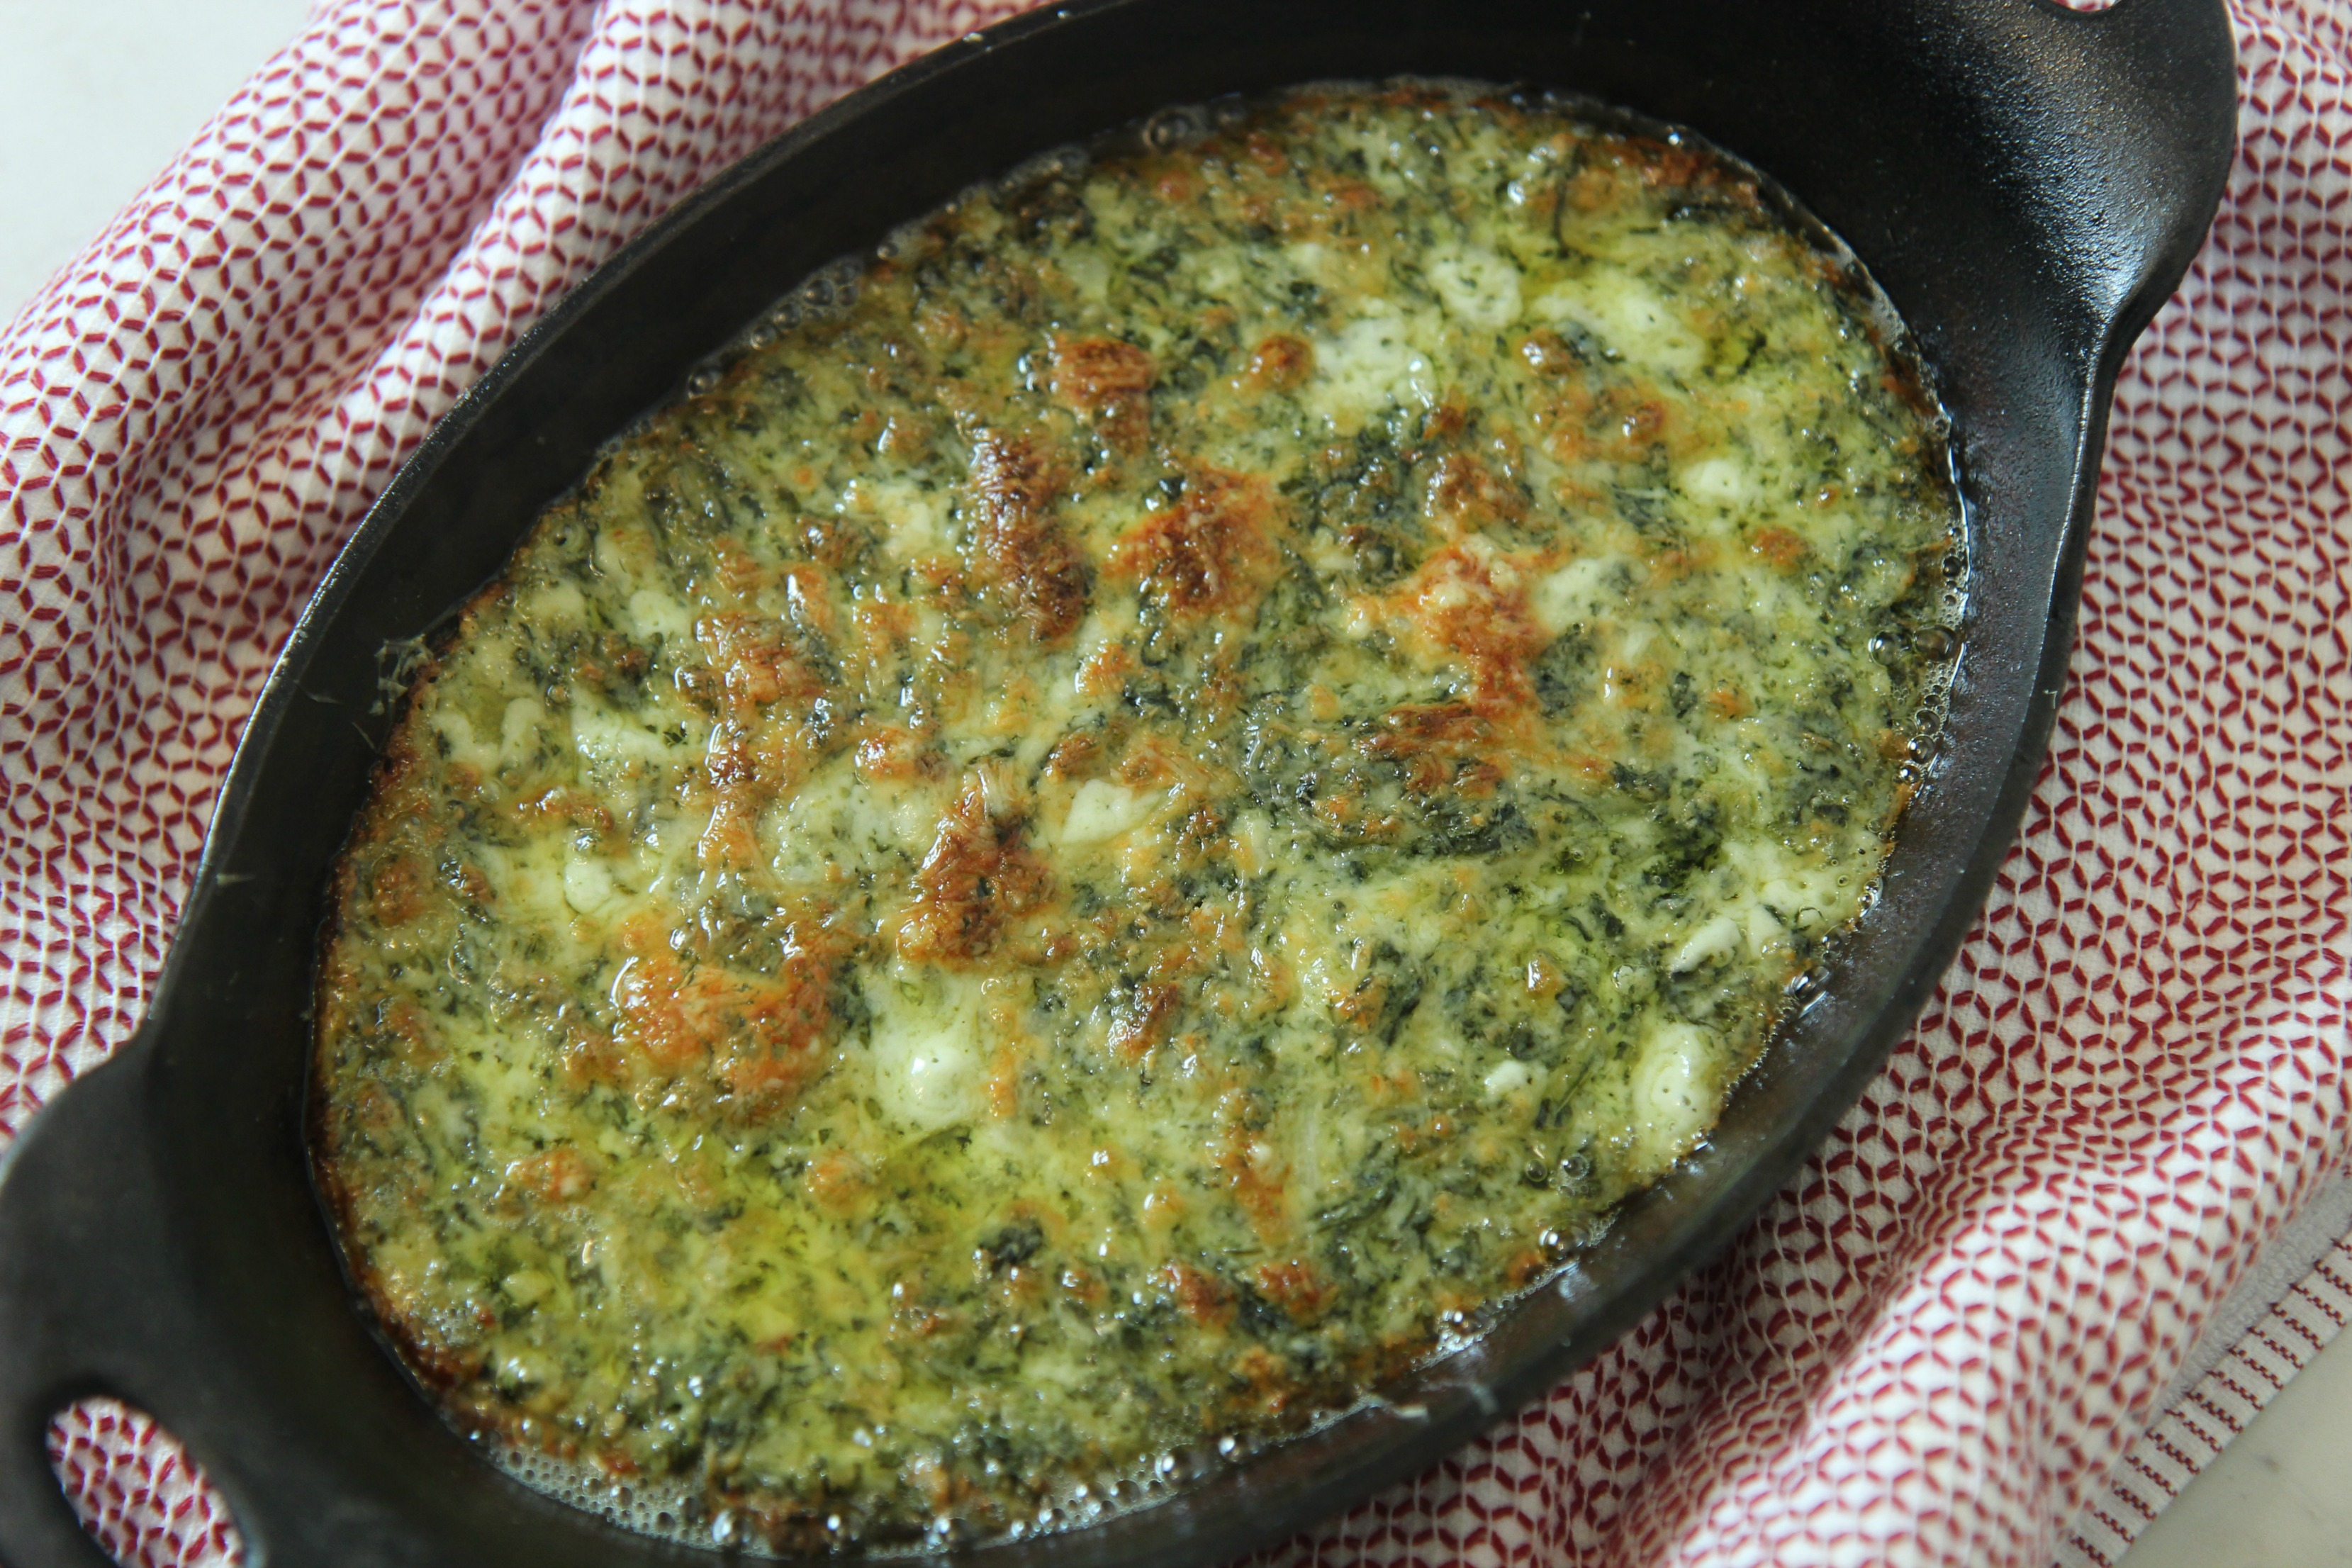 This spinach dip has a delicious cheesy baked crust that's perfect for dipping.